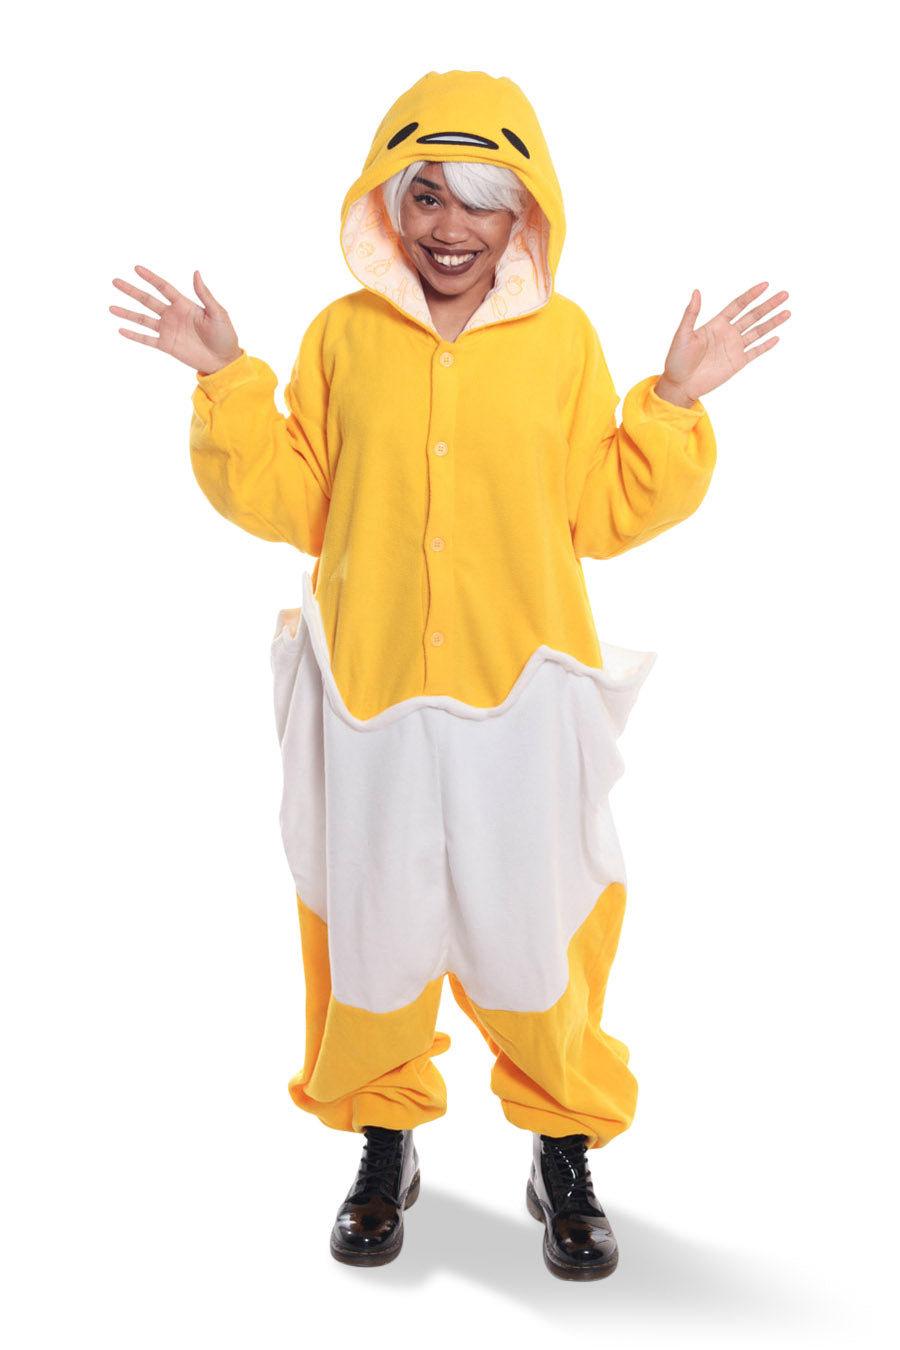 Gudetama Character Kigurumi Adult Onesie Costume Pajamas Yellow Egg White Main